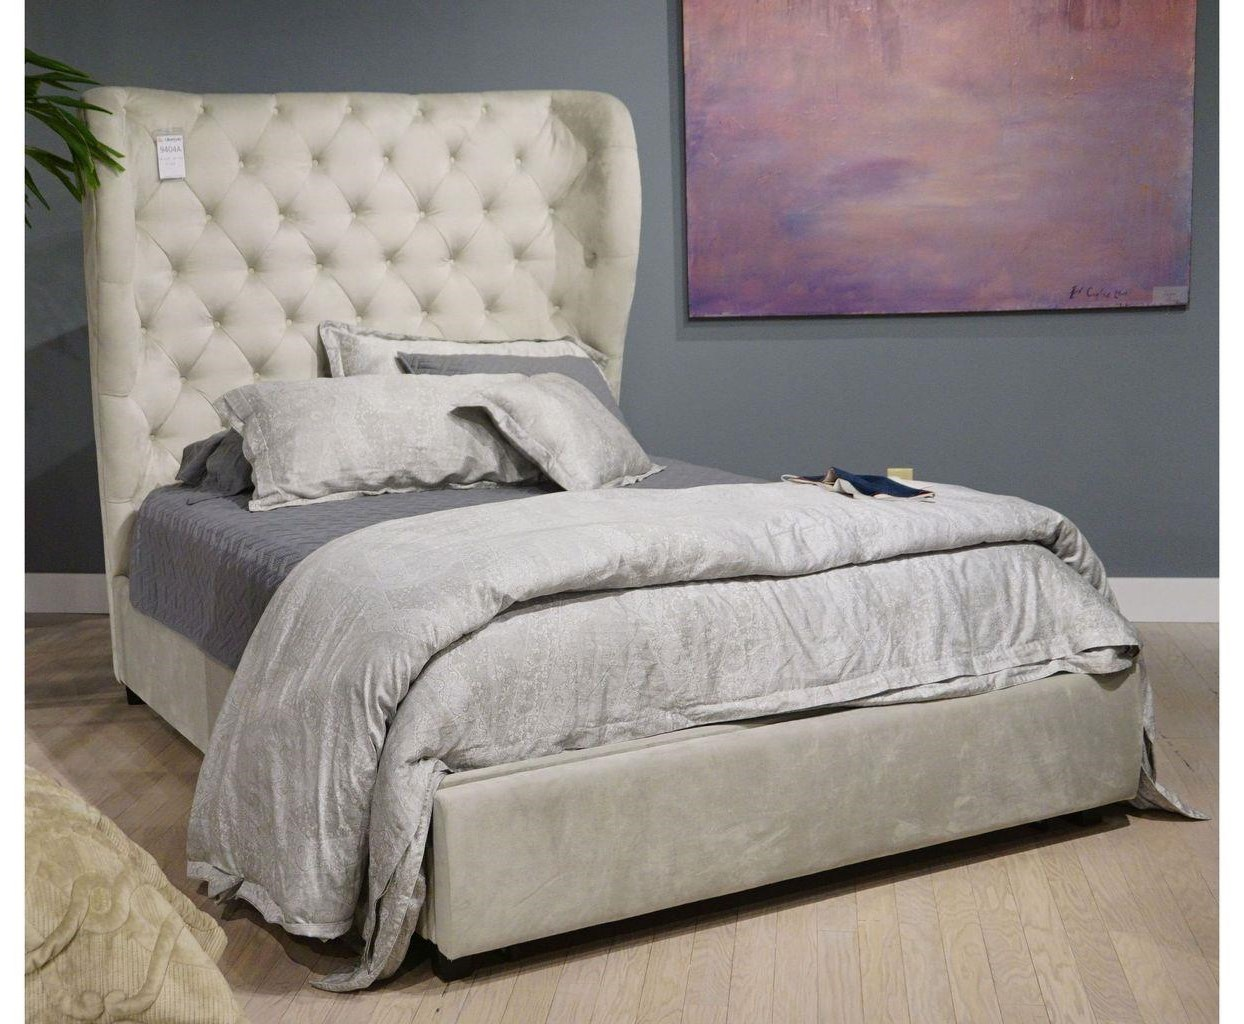 C9404 Queen Upholstered Bed by Lifestyle at Furniture Fair - North Carolina